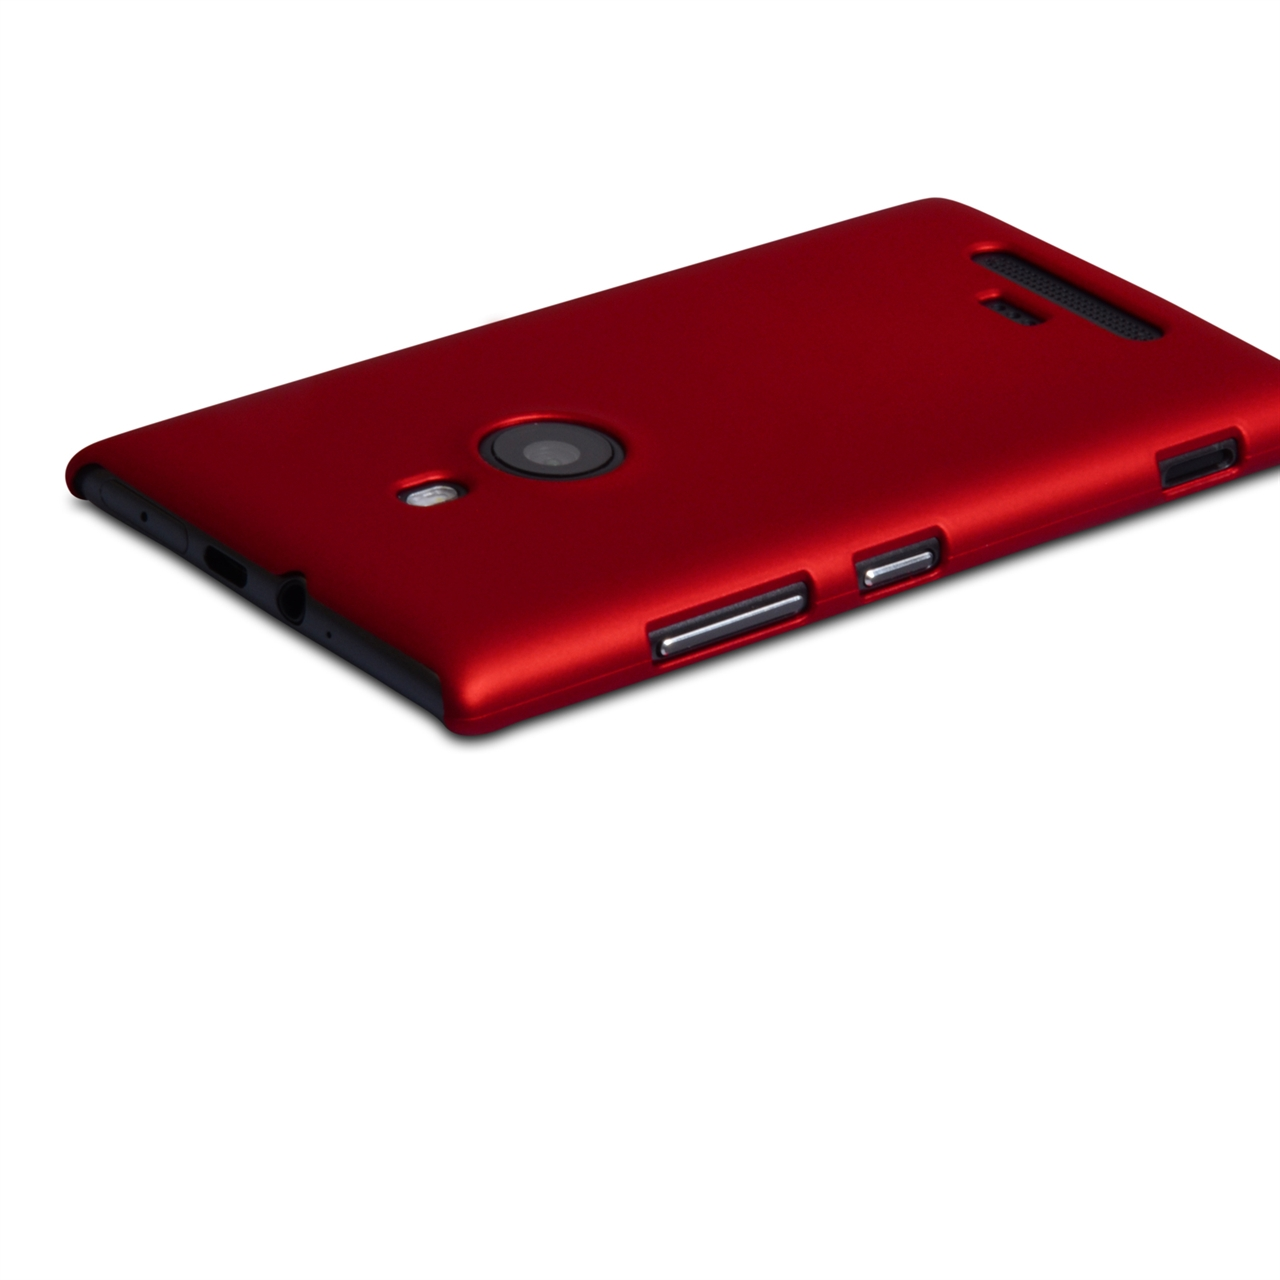 YouSave Accessories Nokia Lumia 925 Hard Hybrid Case - Red